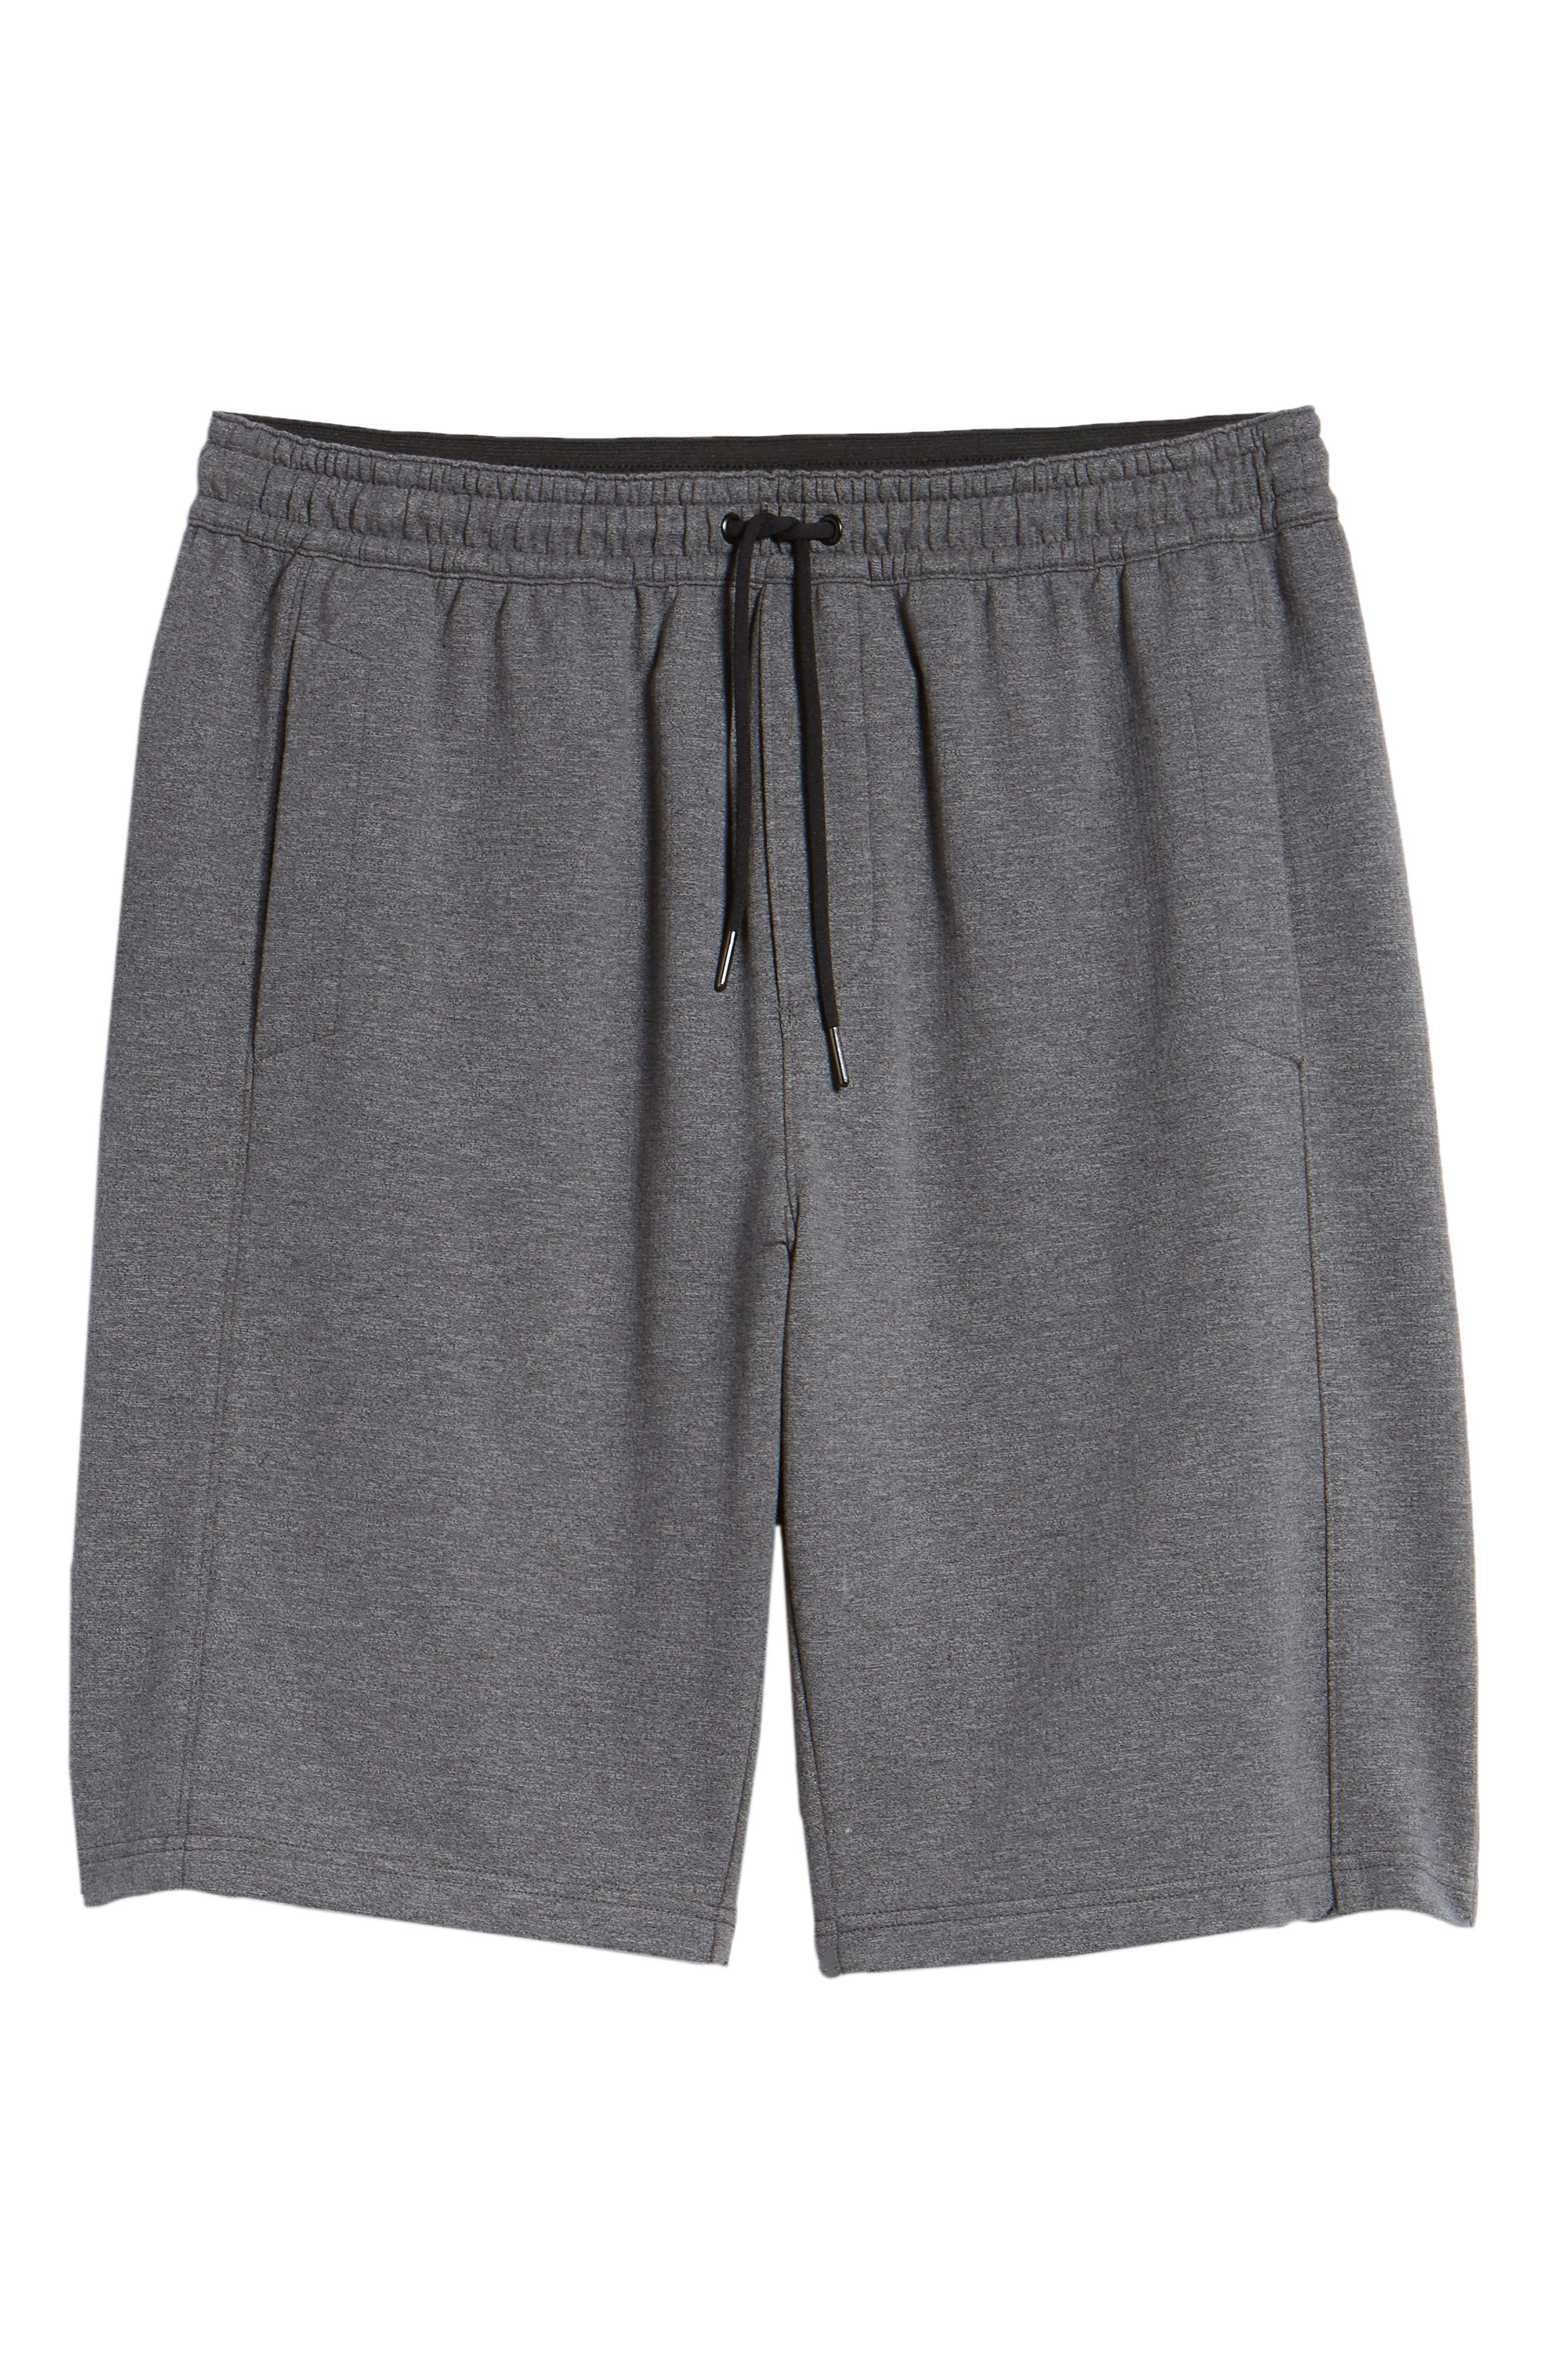 Arcanite Knit Shorts,                             Alternate thumbnail 6, color,                             021